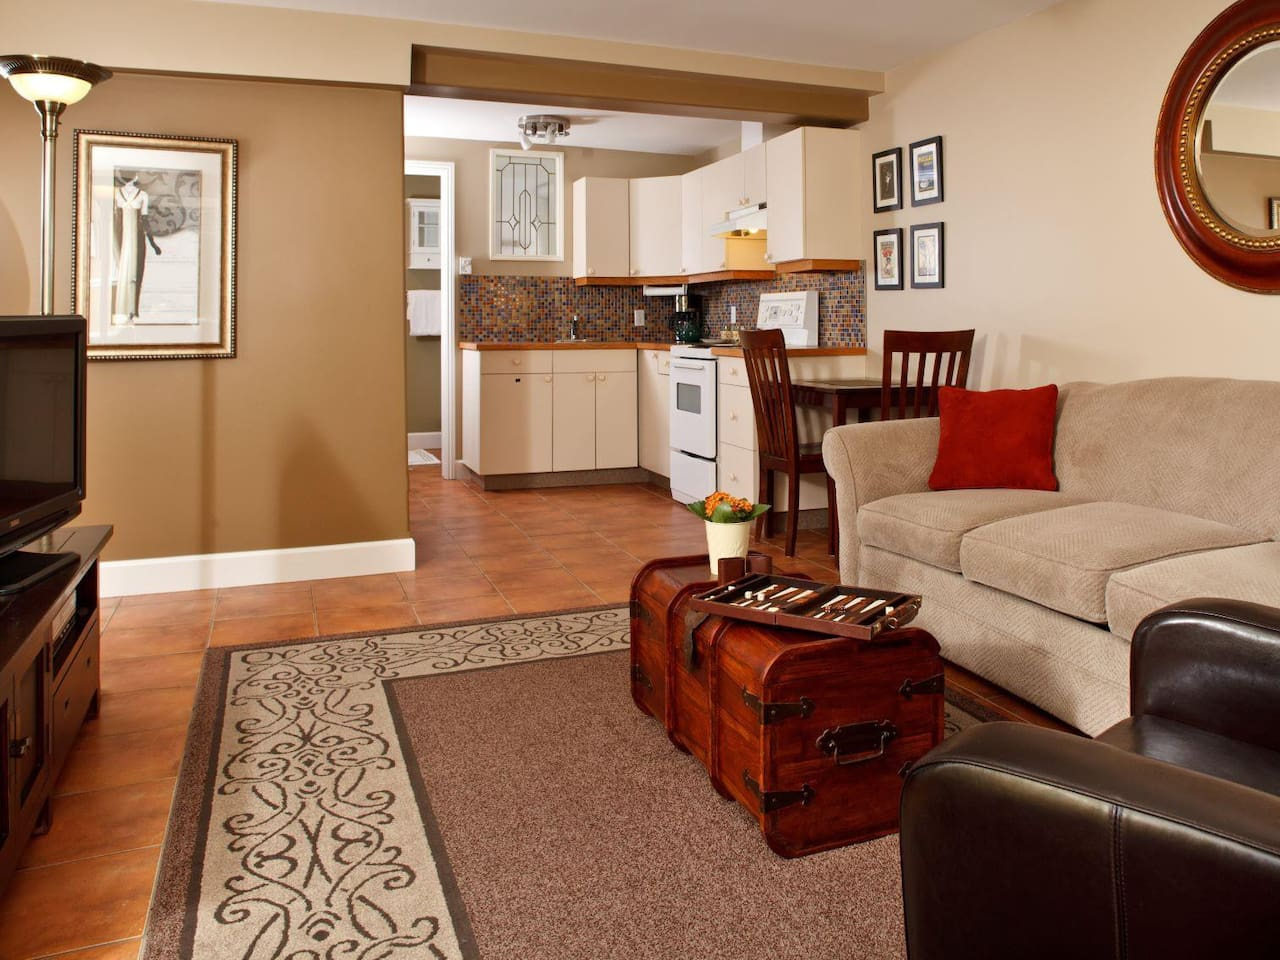 Enjoy a comfortable living room with flat screen TV and full kitchen facilities